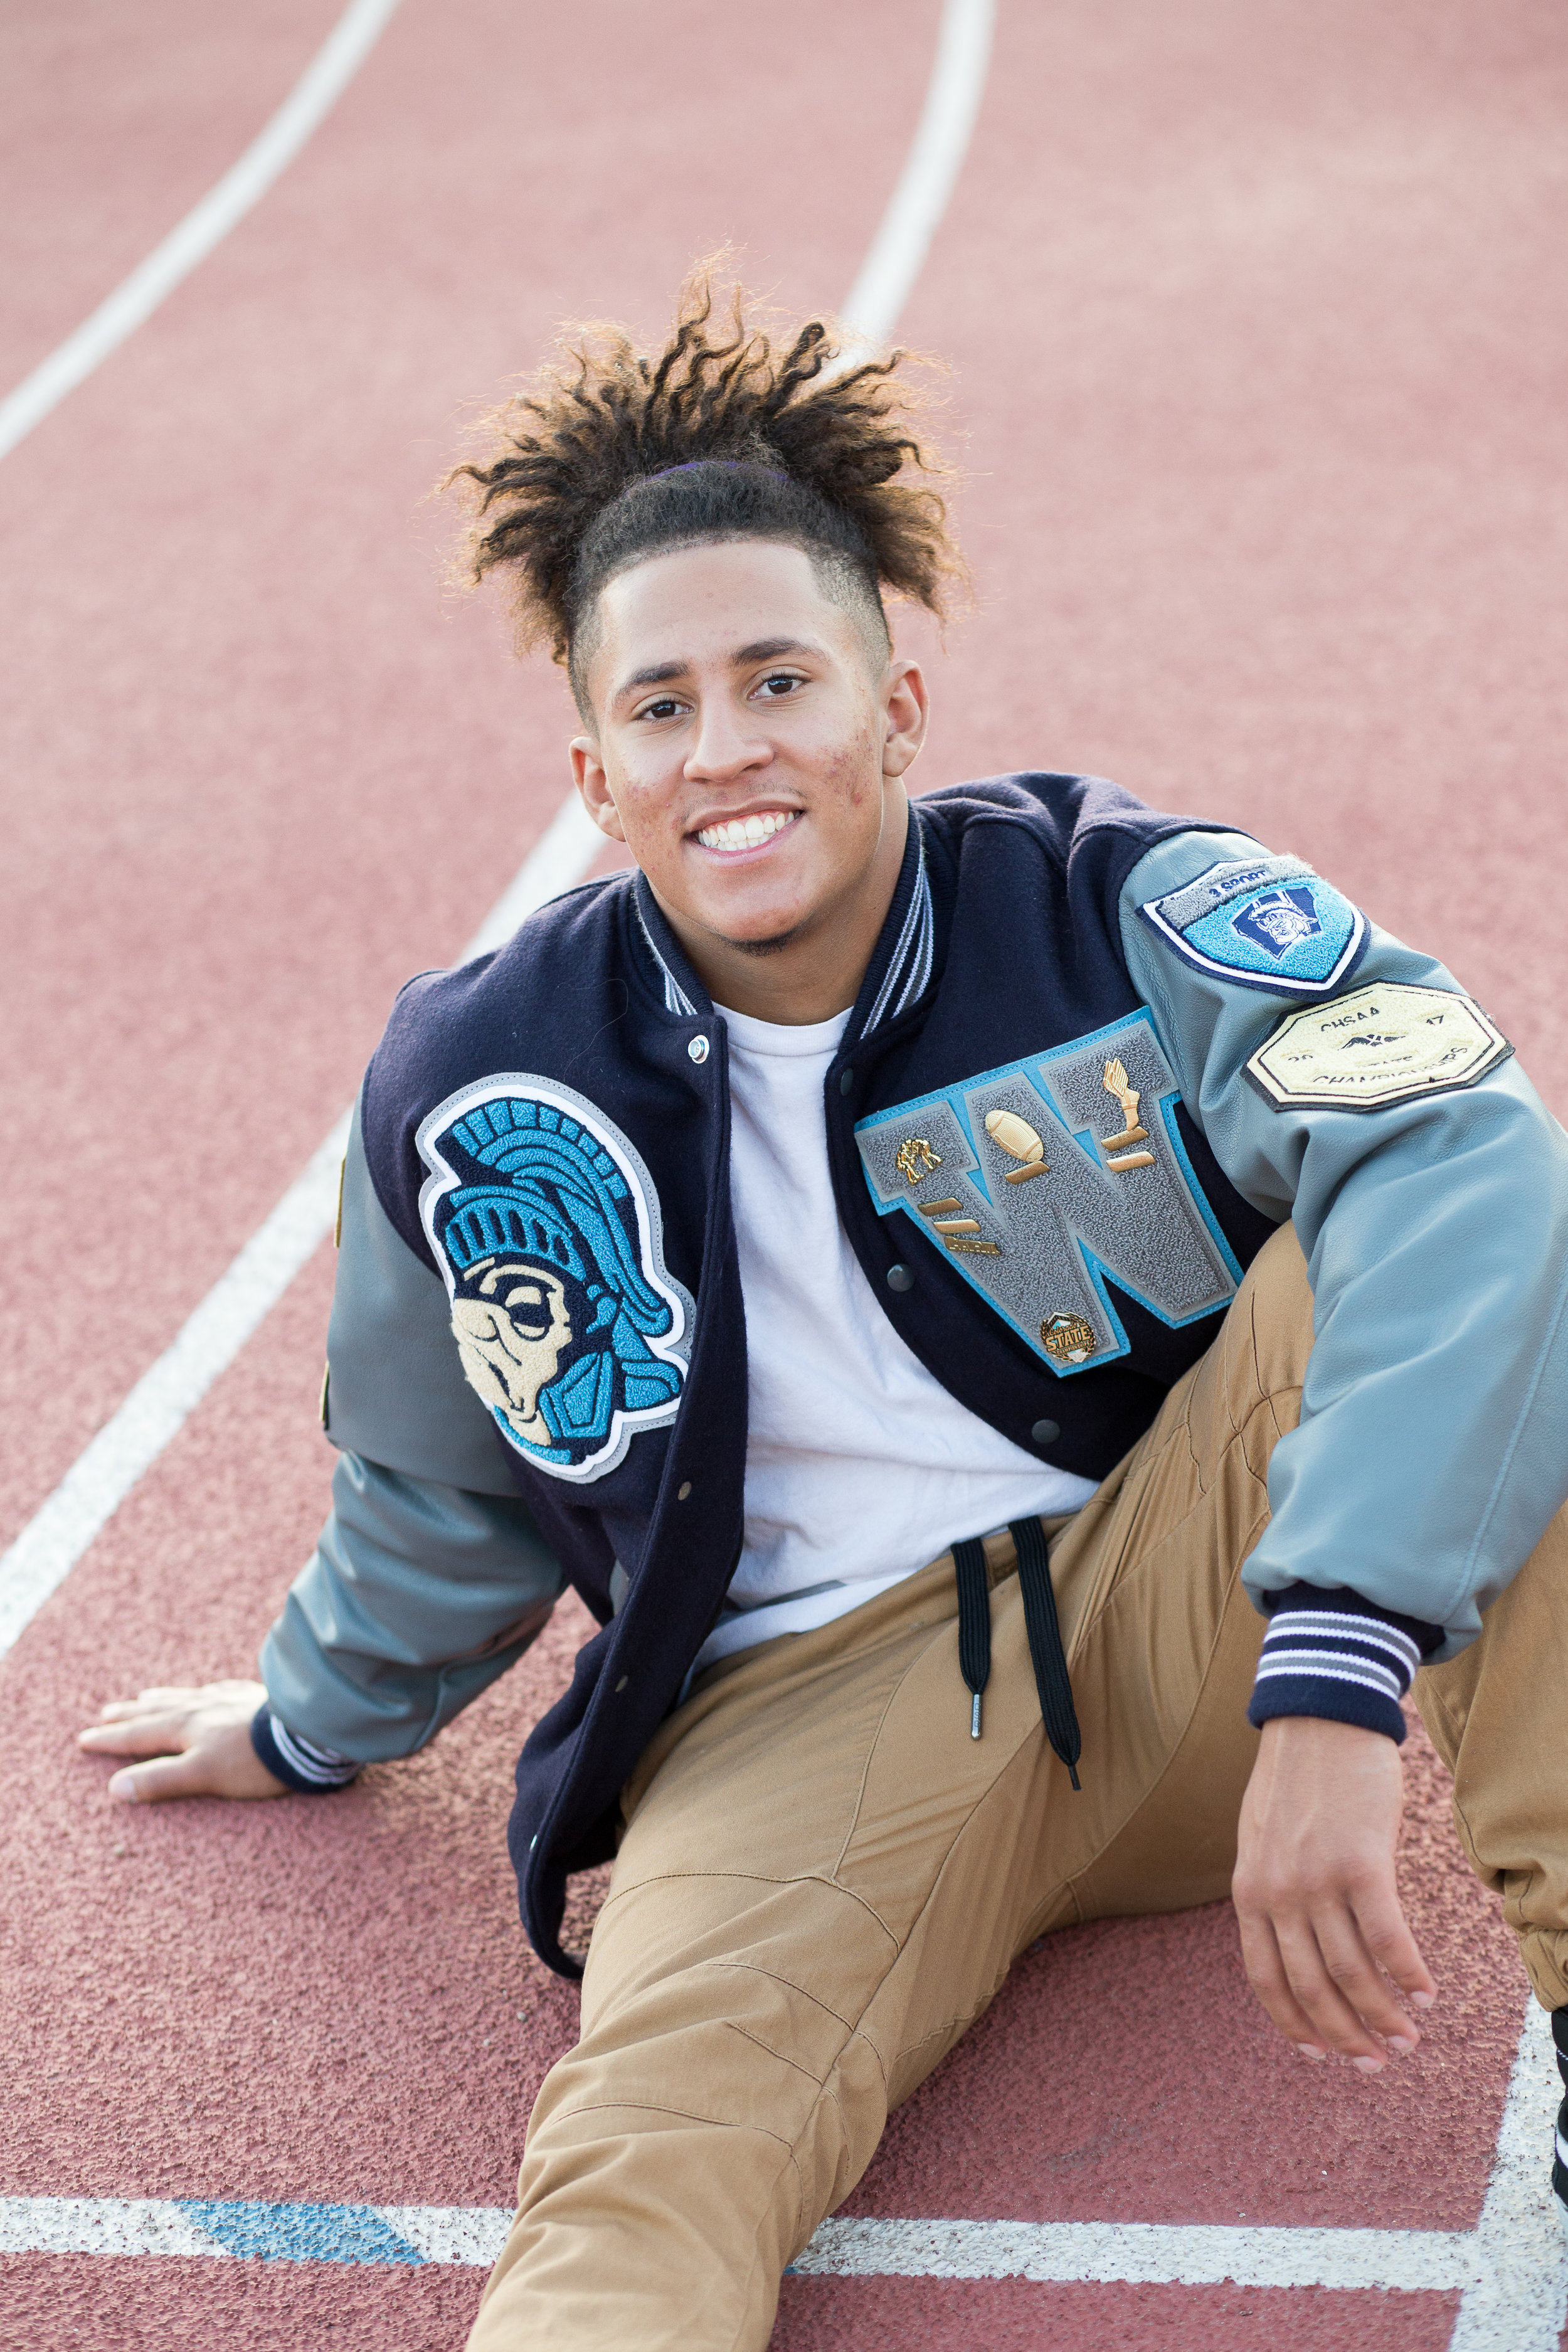 Senior in varsity jacket sitting on a track leaning back on hand smiling at camera Stacy Carosa Photography Colorado Springs